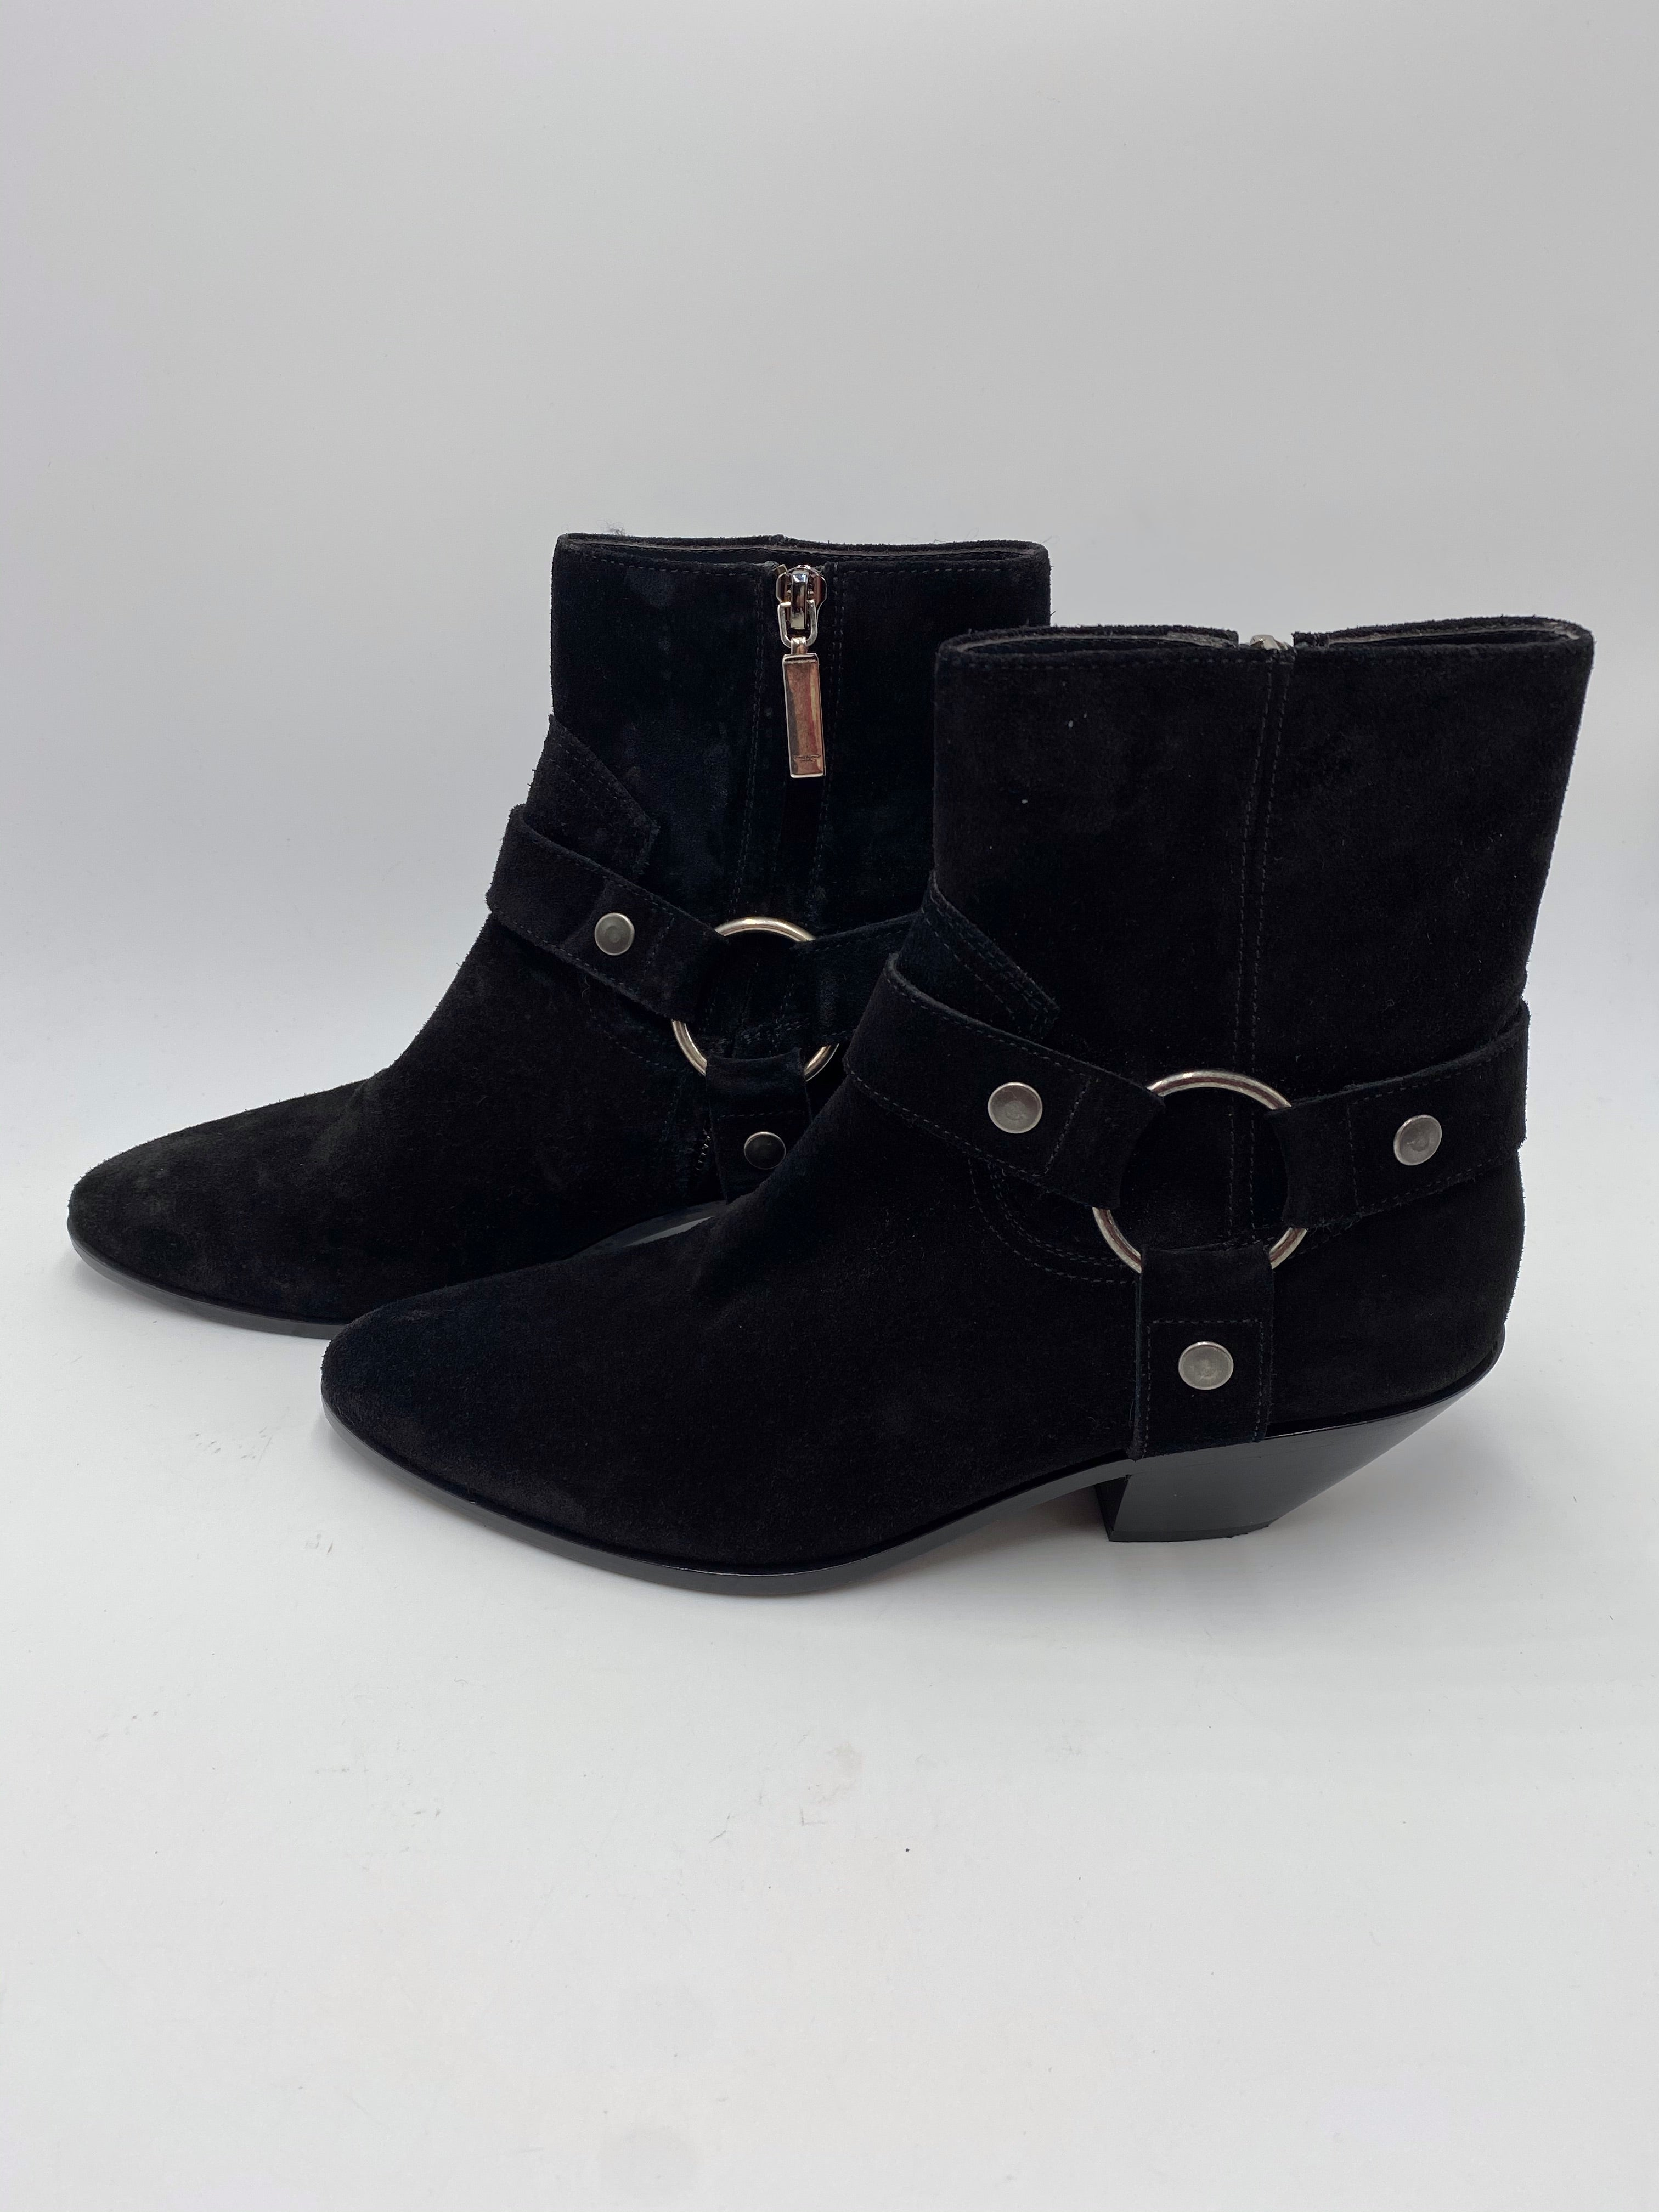 Saint Laurent Suede Ankle Booties Size 38